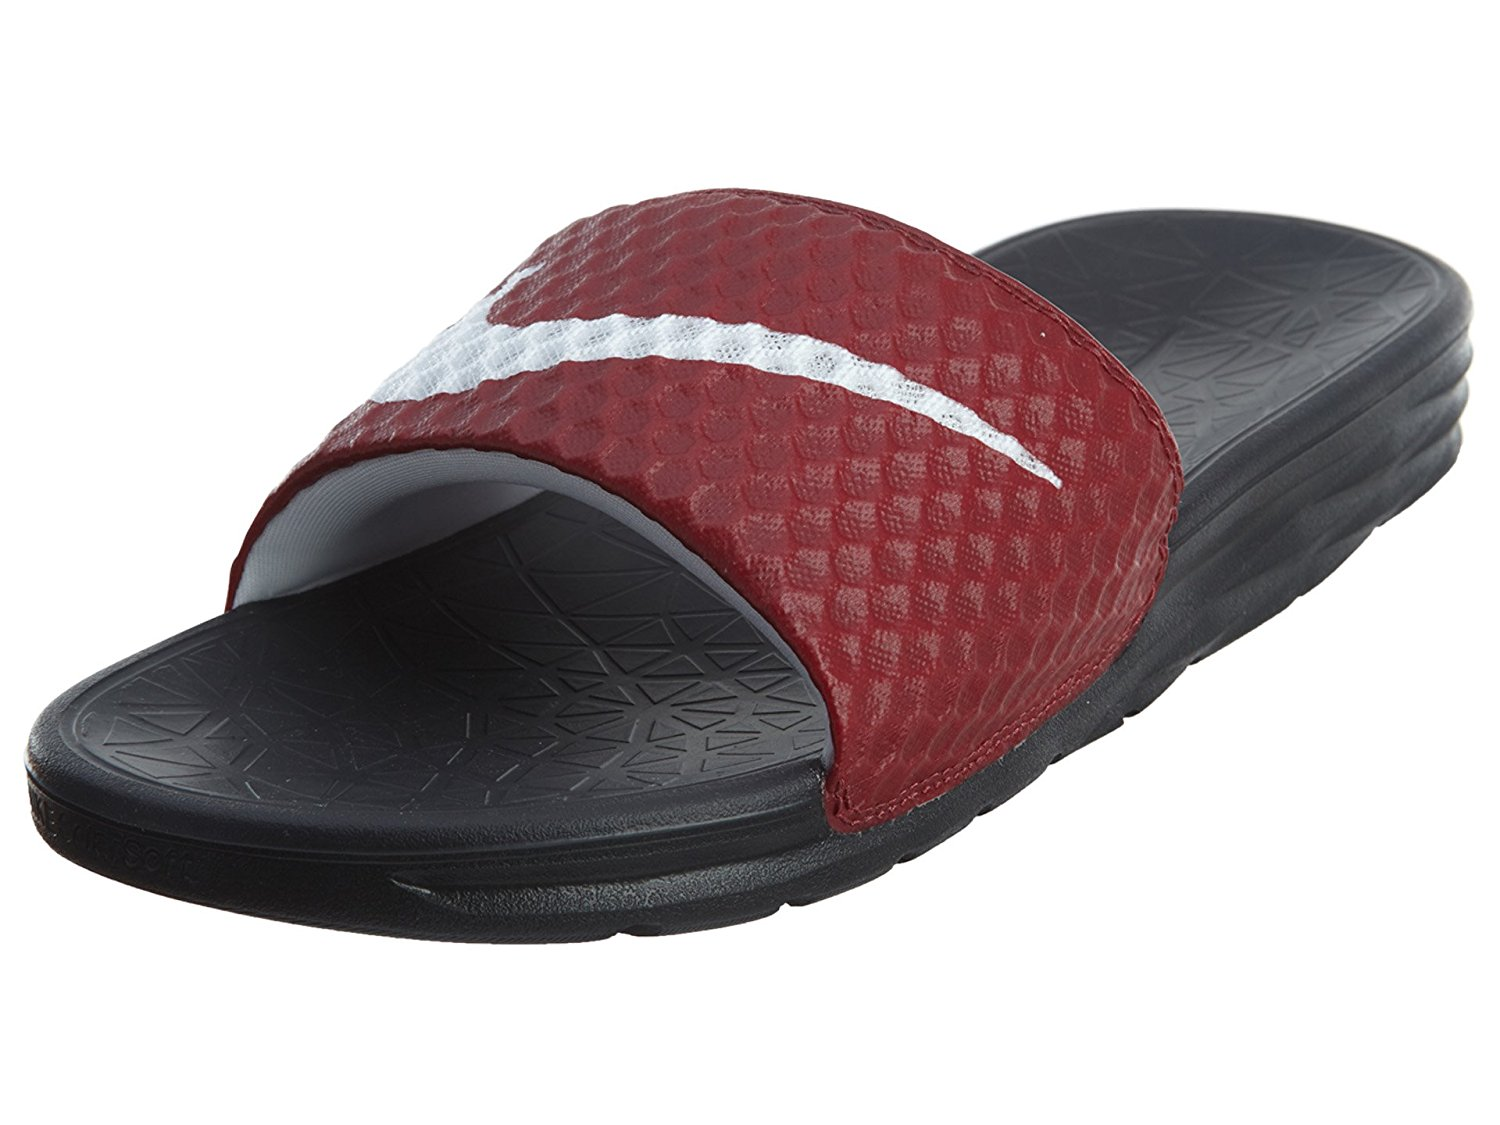 29aac7304 Nike Men s Benassi Solarsoft Slide